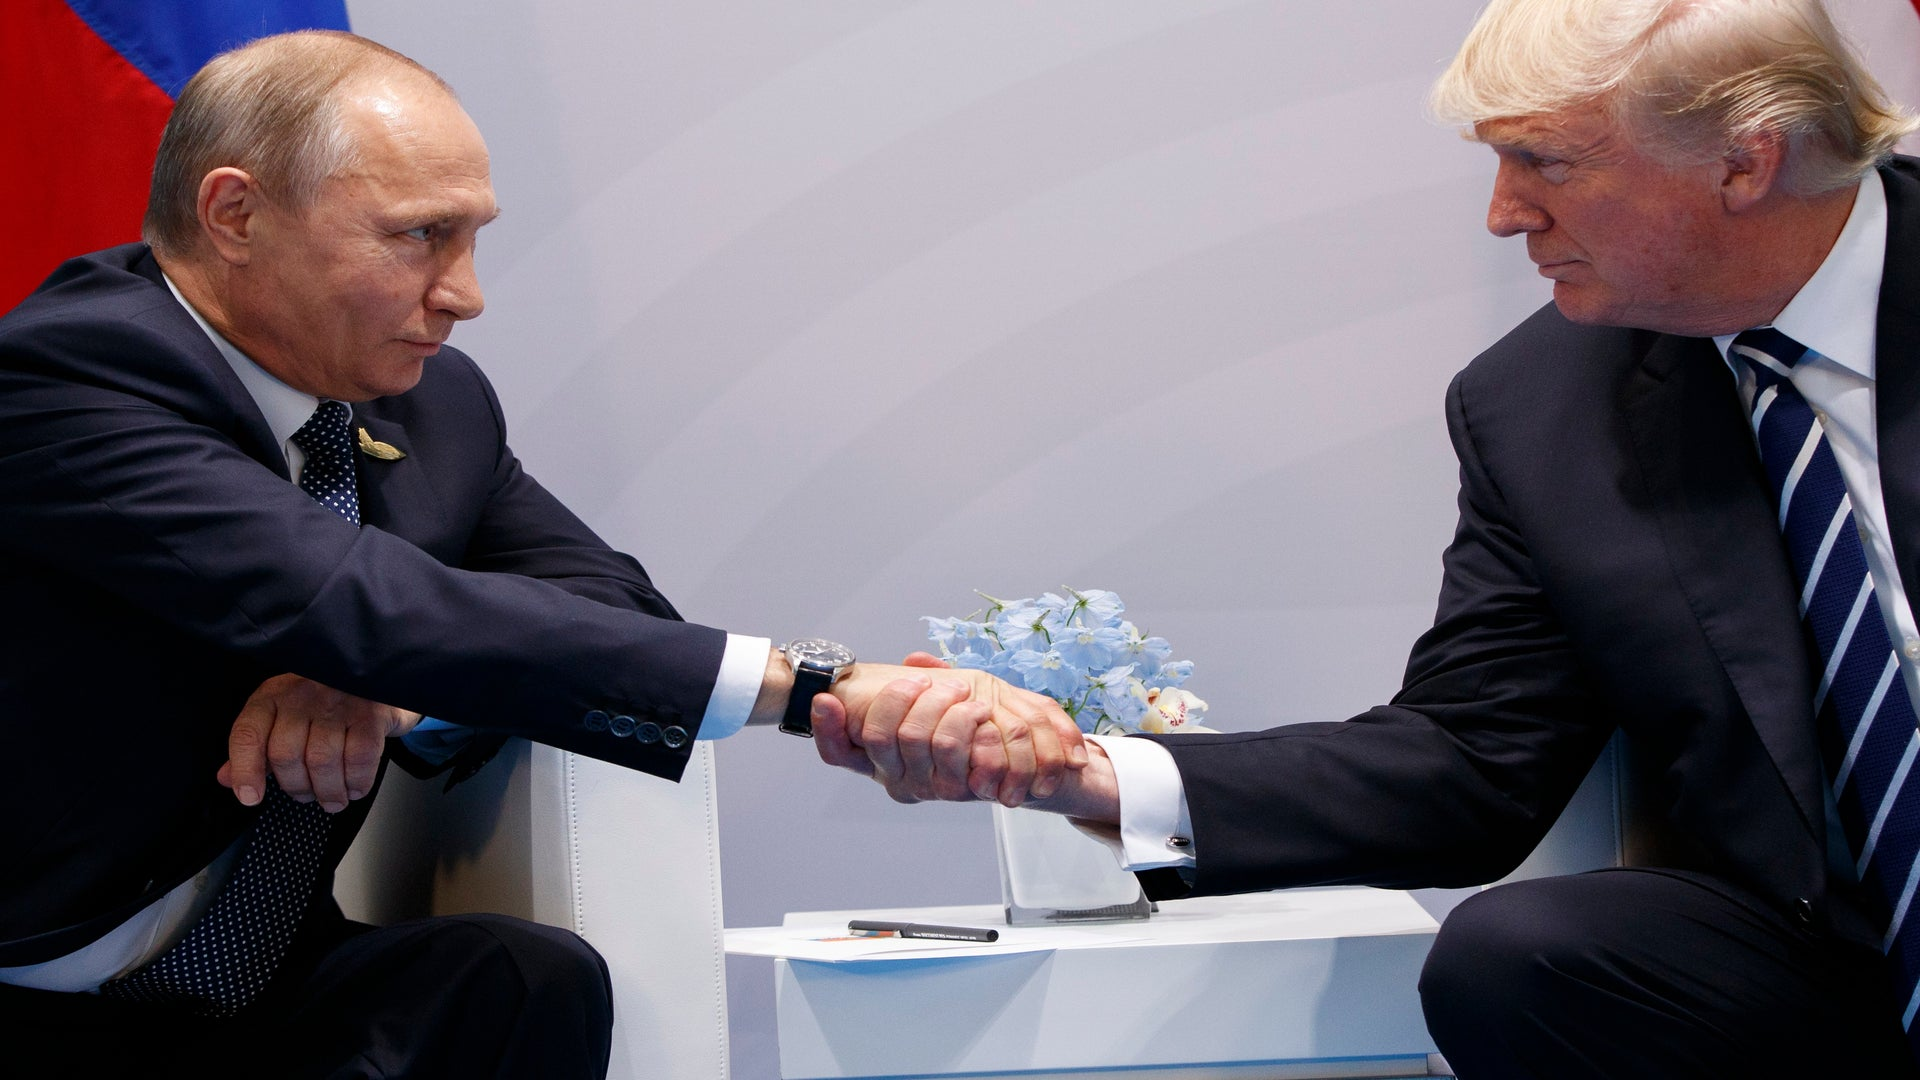 President Trump Had A Previously Undisclosed Second Meeting With Vladimir Putin